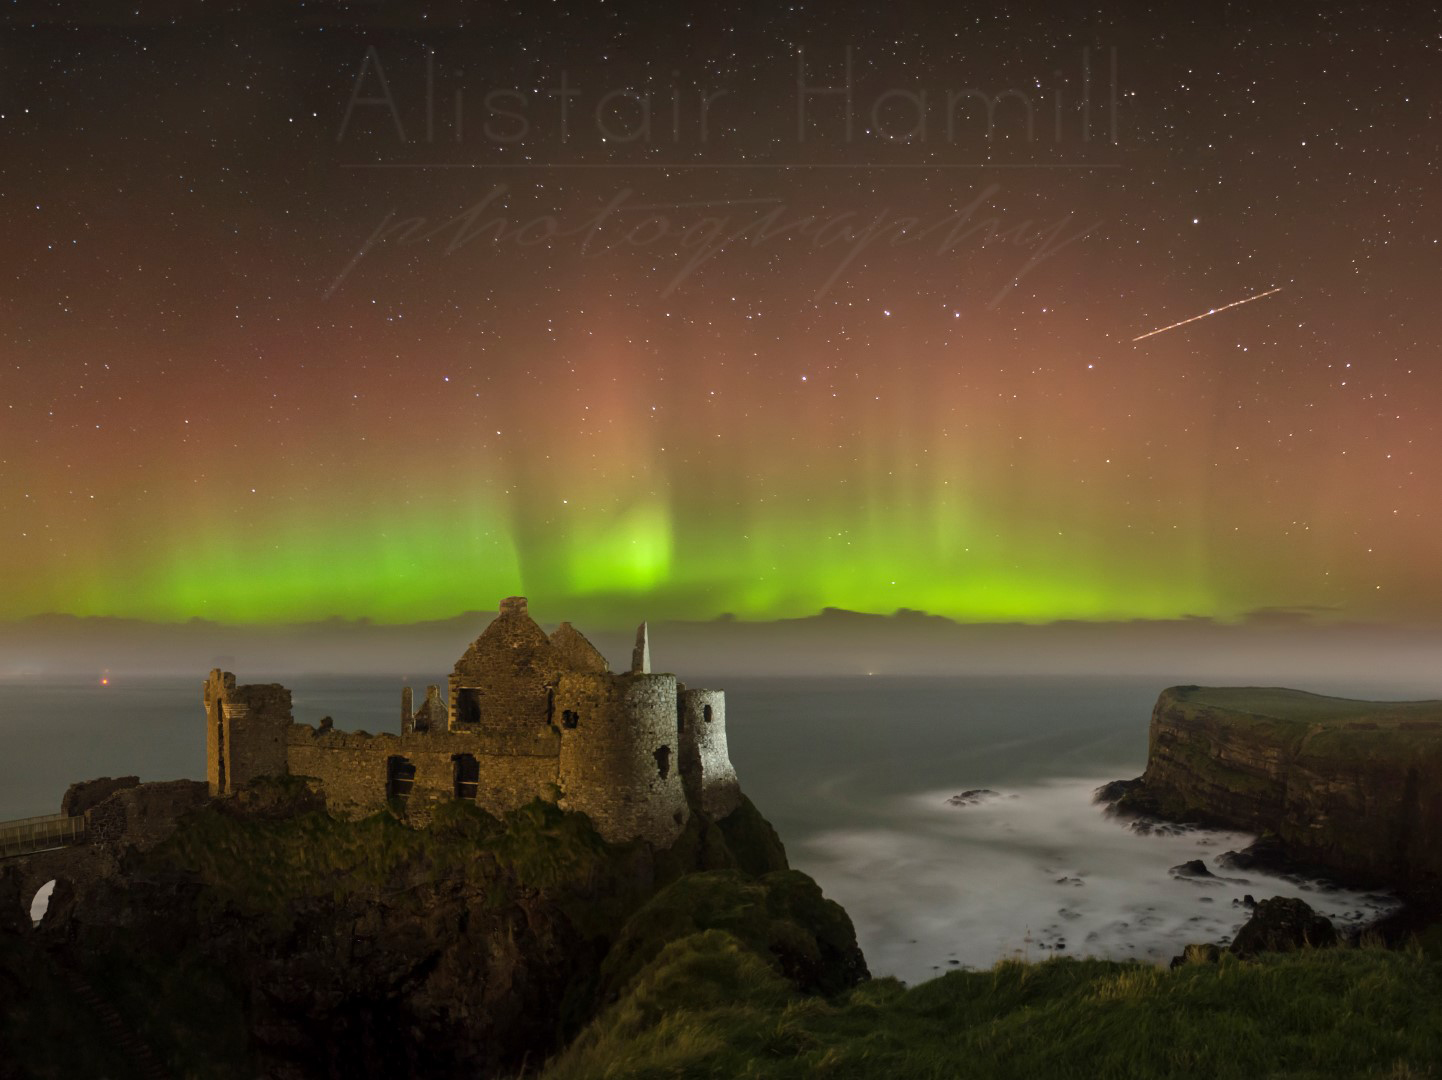 The 30 October norther lights at Dunluce Castle - my first aurora shot.